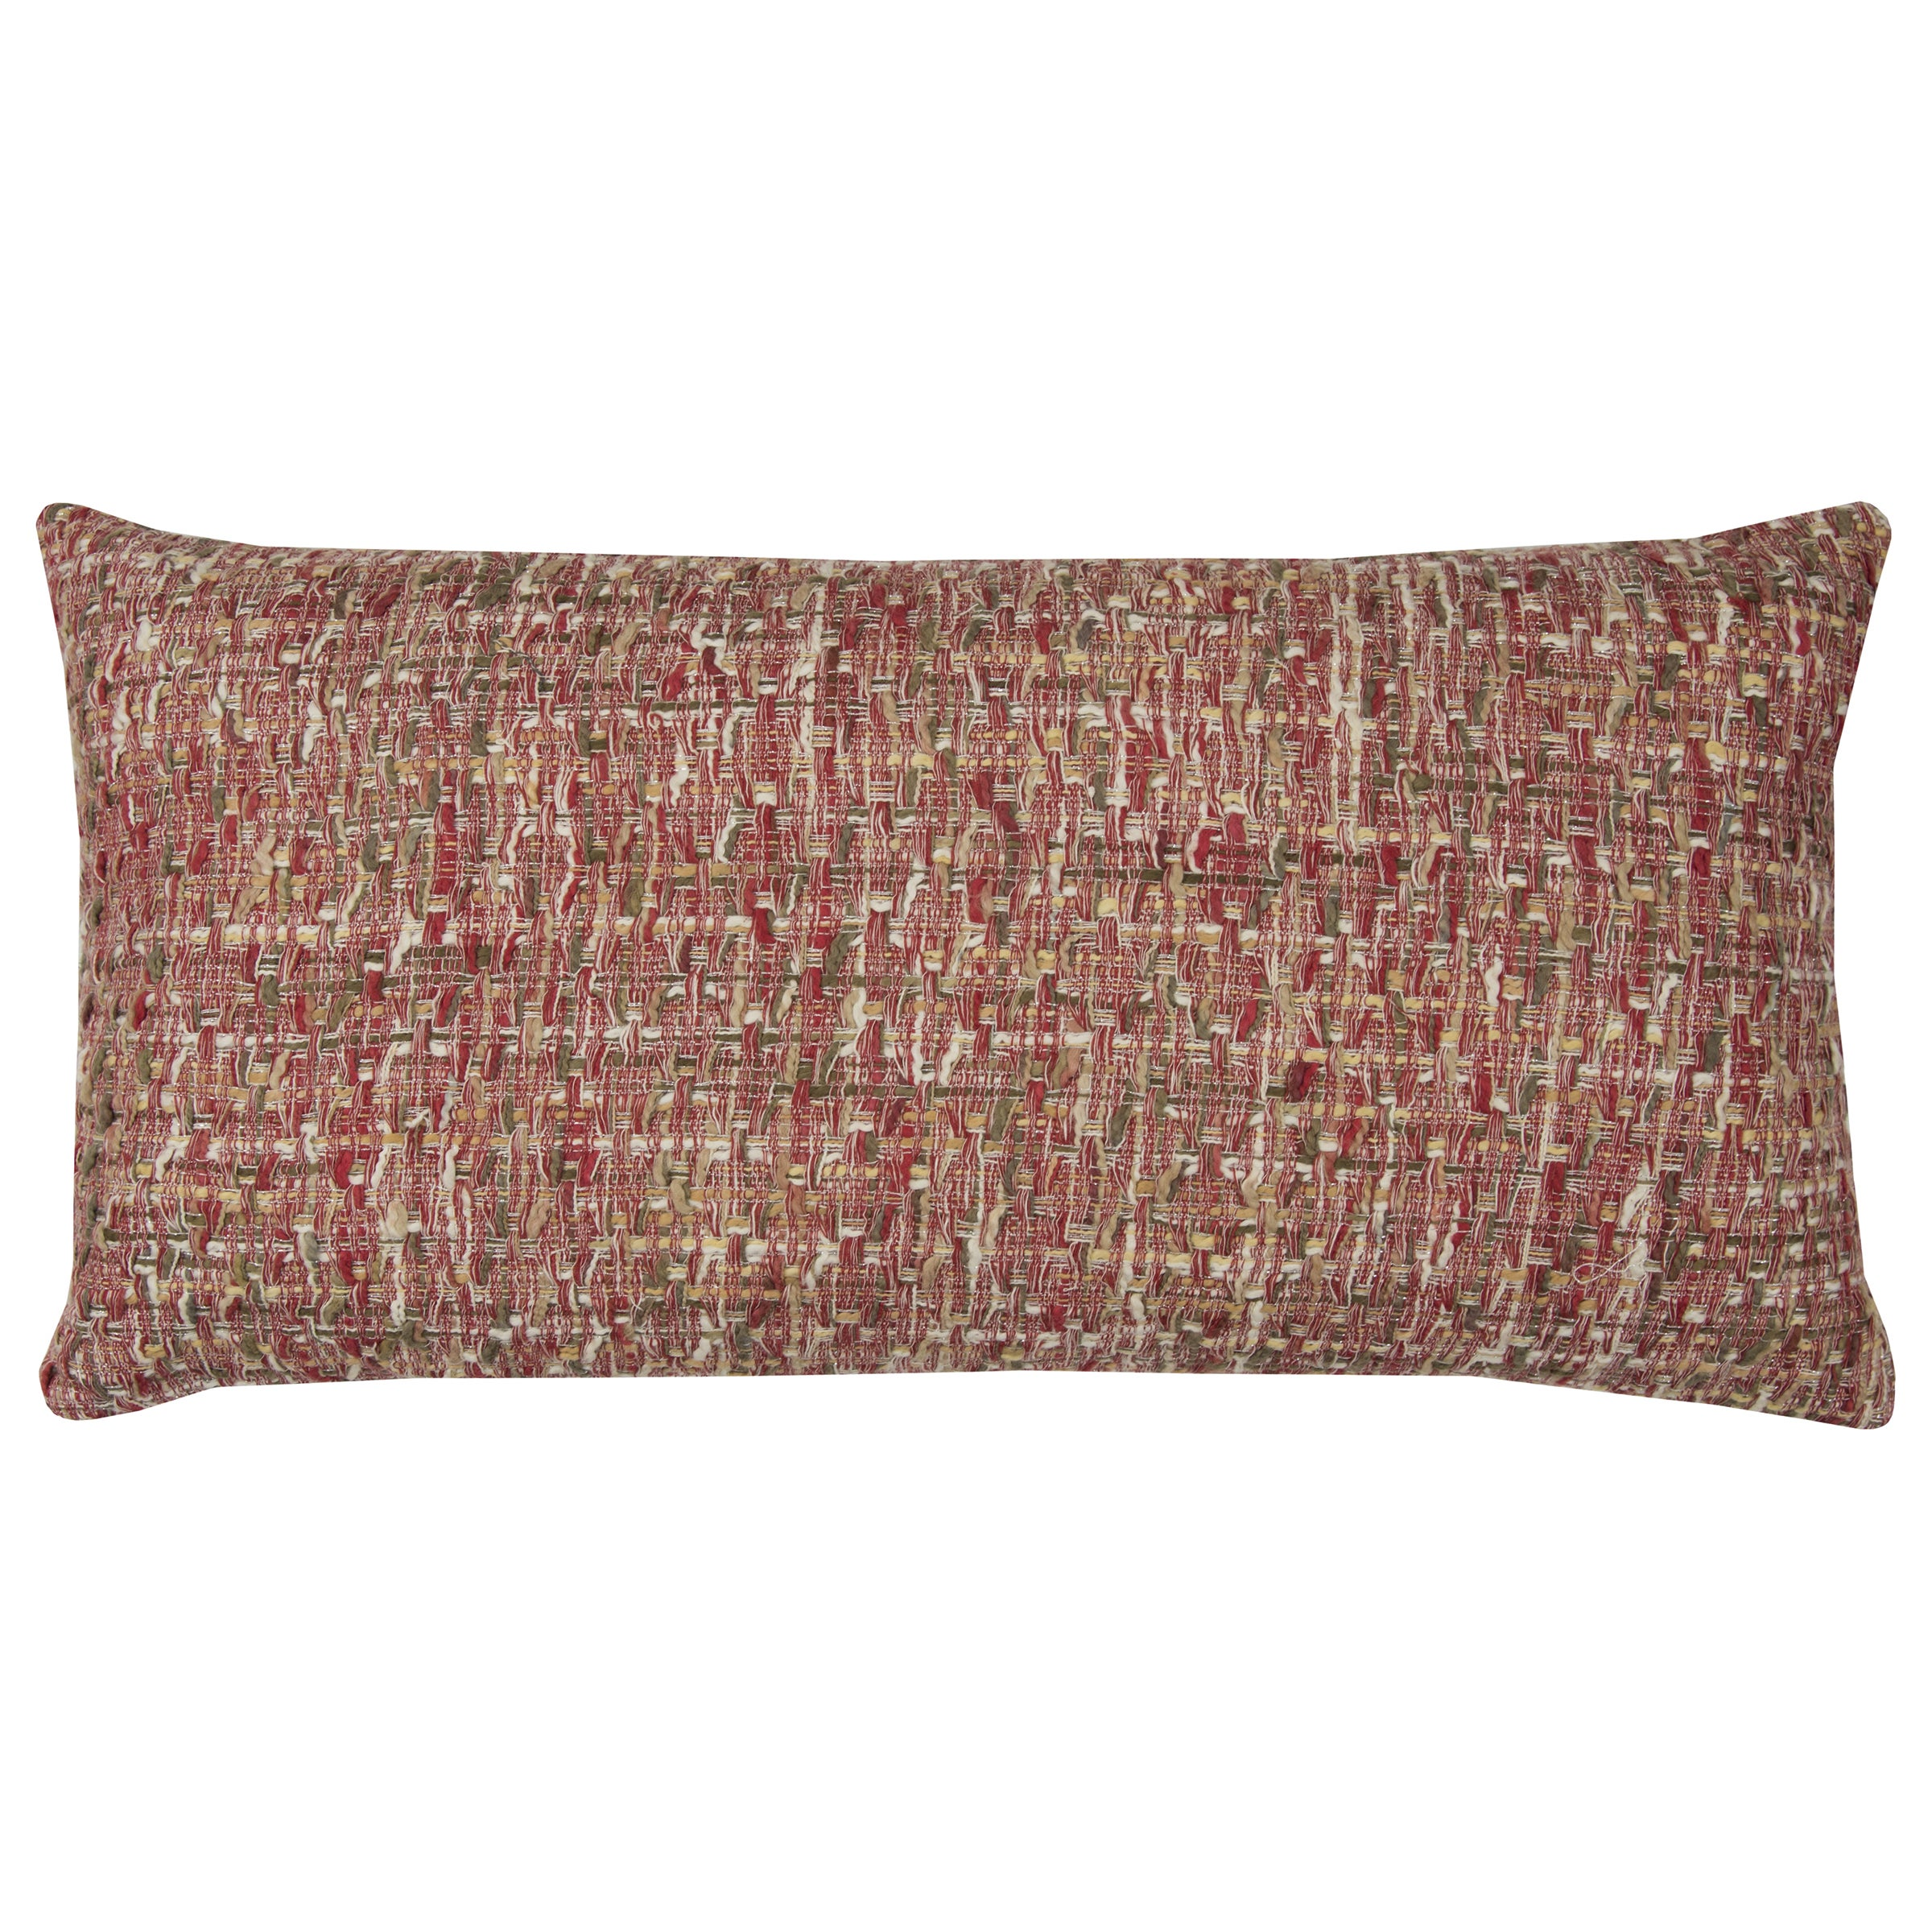 Rizzy Rugs All Over Threaded Pattern Red/ Brown Cotton De...